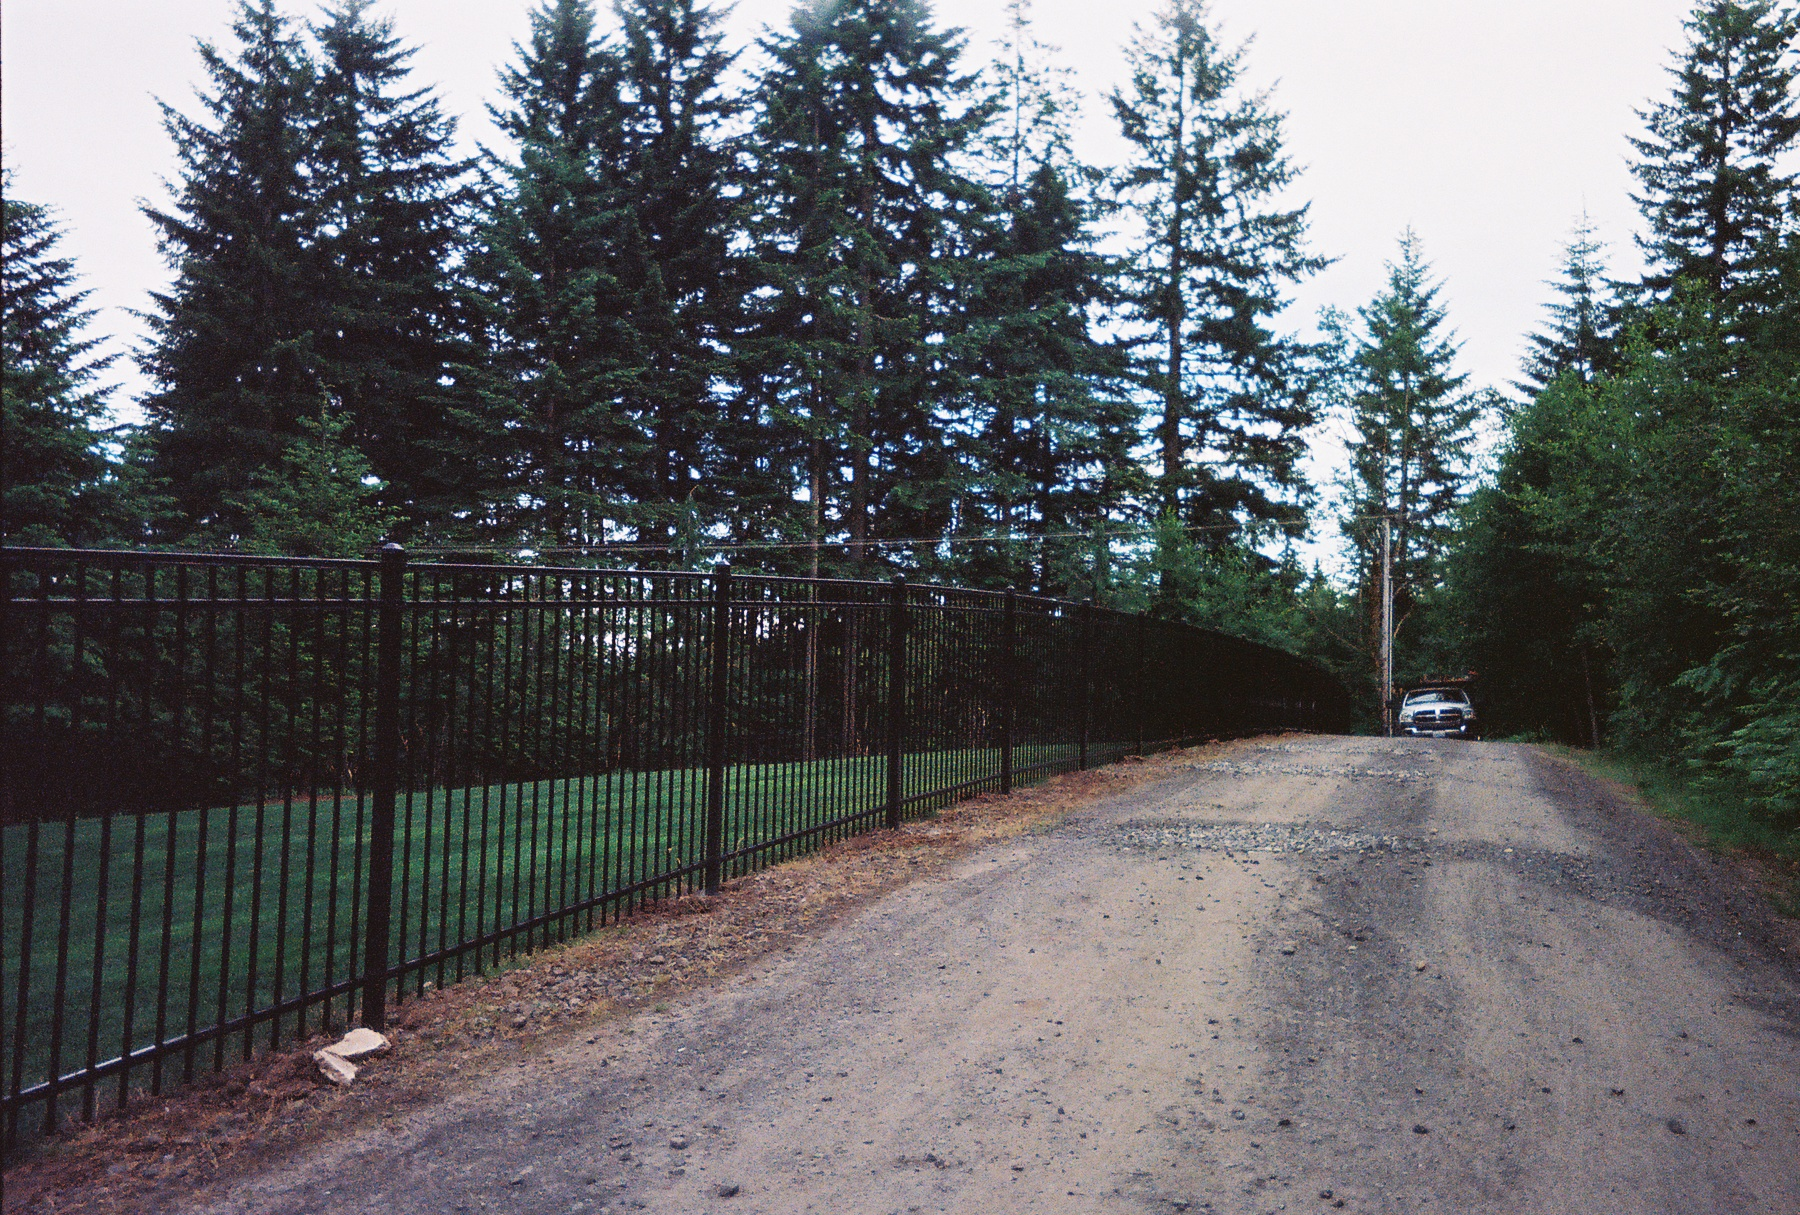 Black Ornamental Fence enhances your property and you scenery. Contact Vancouver Washington's Best Fence Builders. Providing the best in all your fence needs for over 35 years. Call: 360-254-2299 today